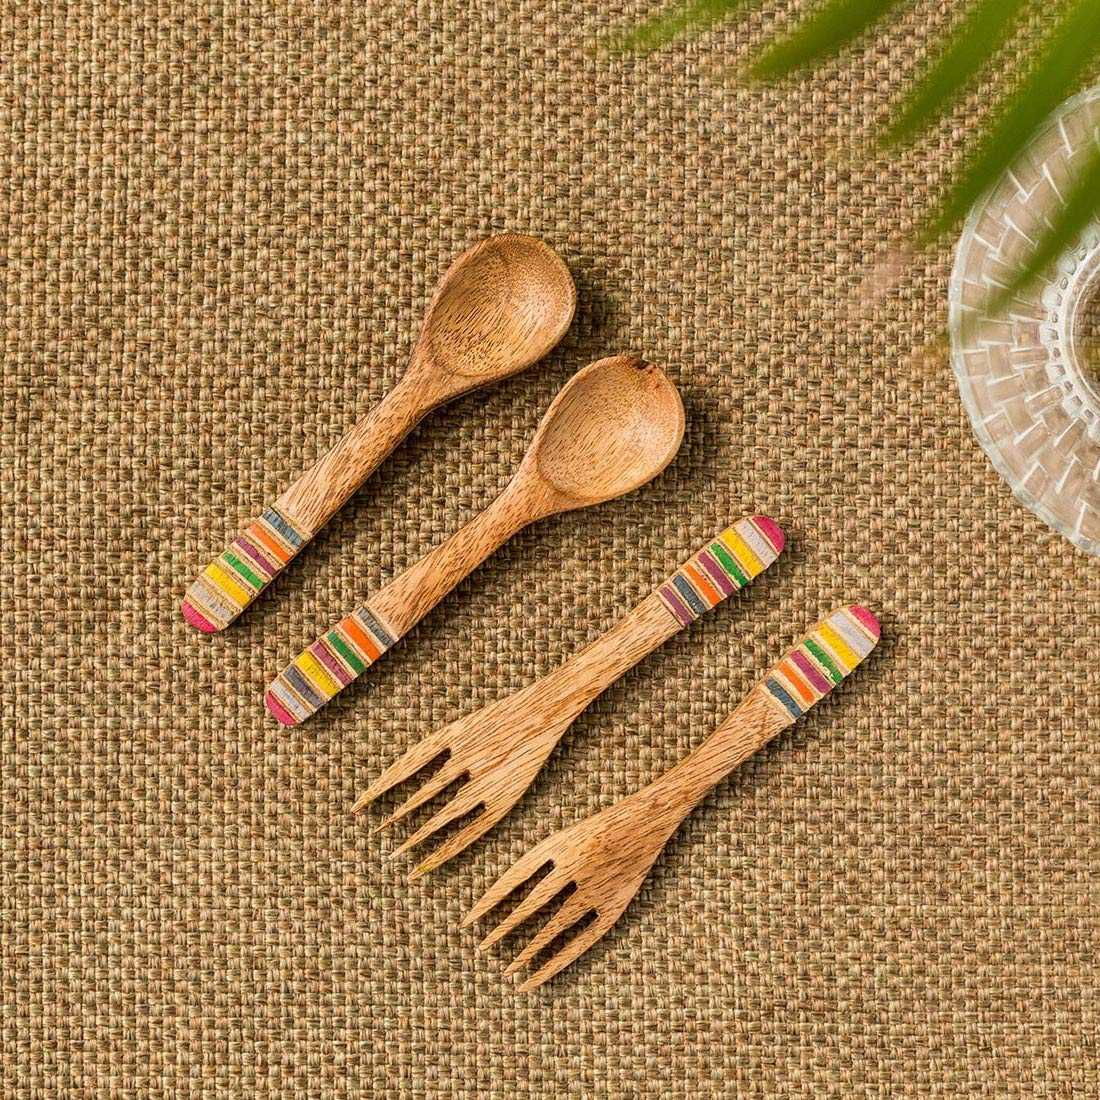 Irake Spoon Eating Spoon Flatware Cutlery Set